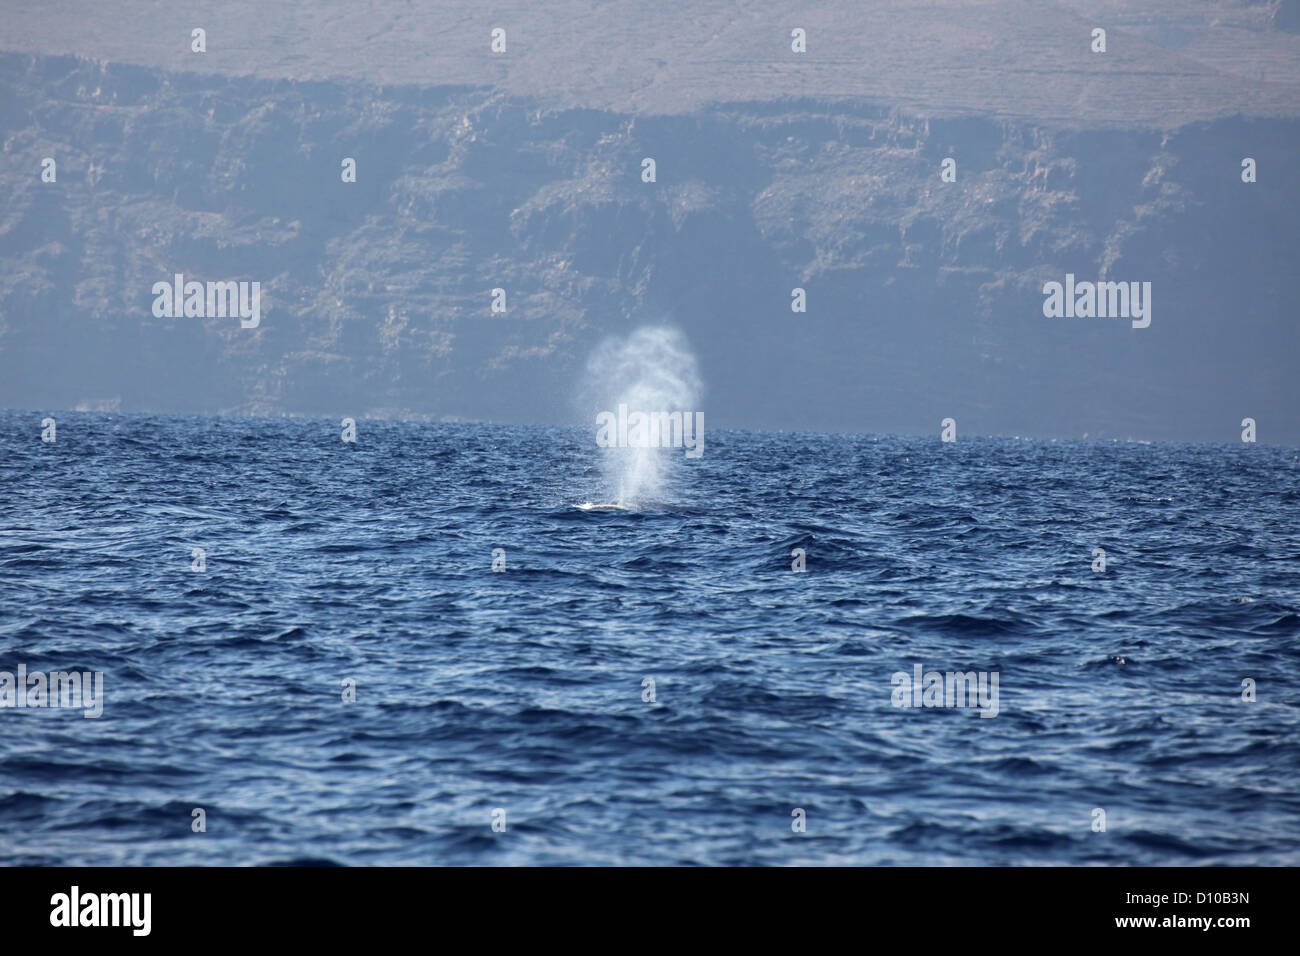 The blow of a large Bryde's whale at the water surface, La Gomera, Canary Islands - Stock Image